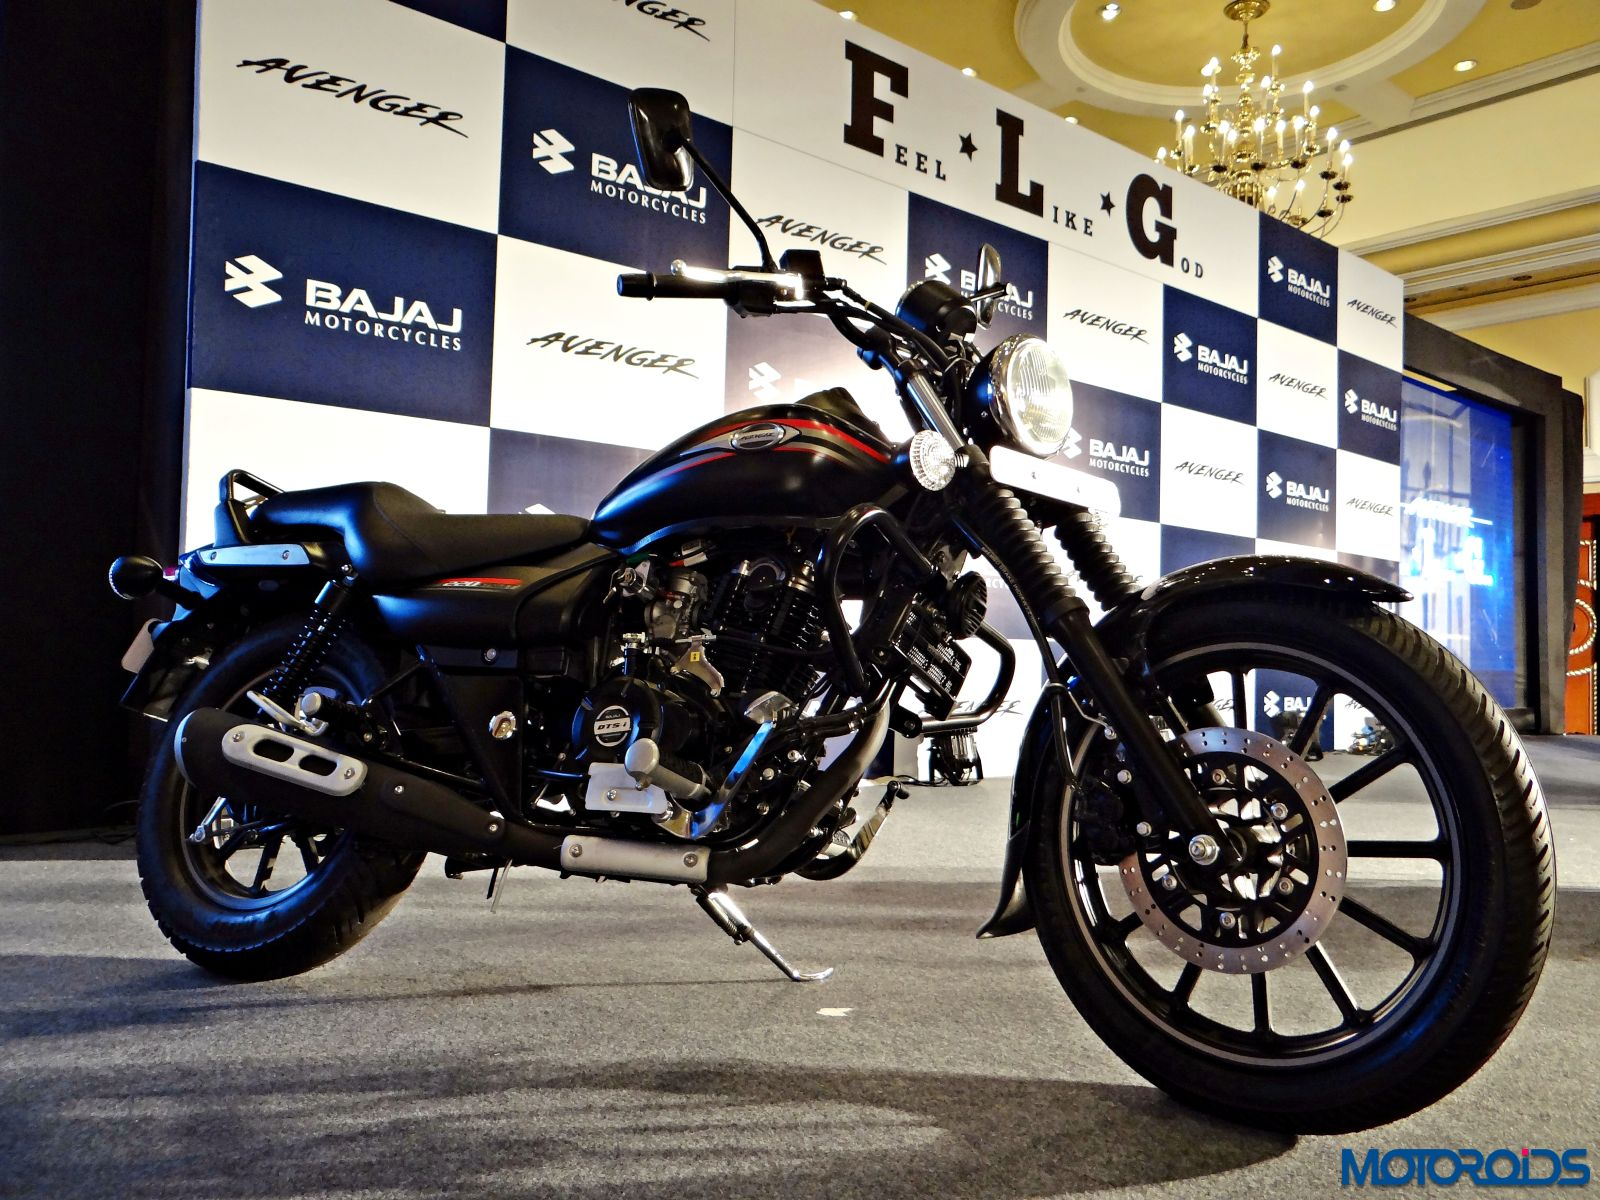 New Bajaj Avenger 220 Street And 150 Street Official Release Image Gallery And All You Need To Know Motoroids